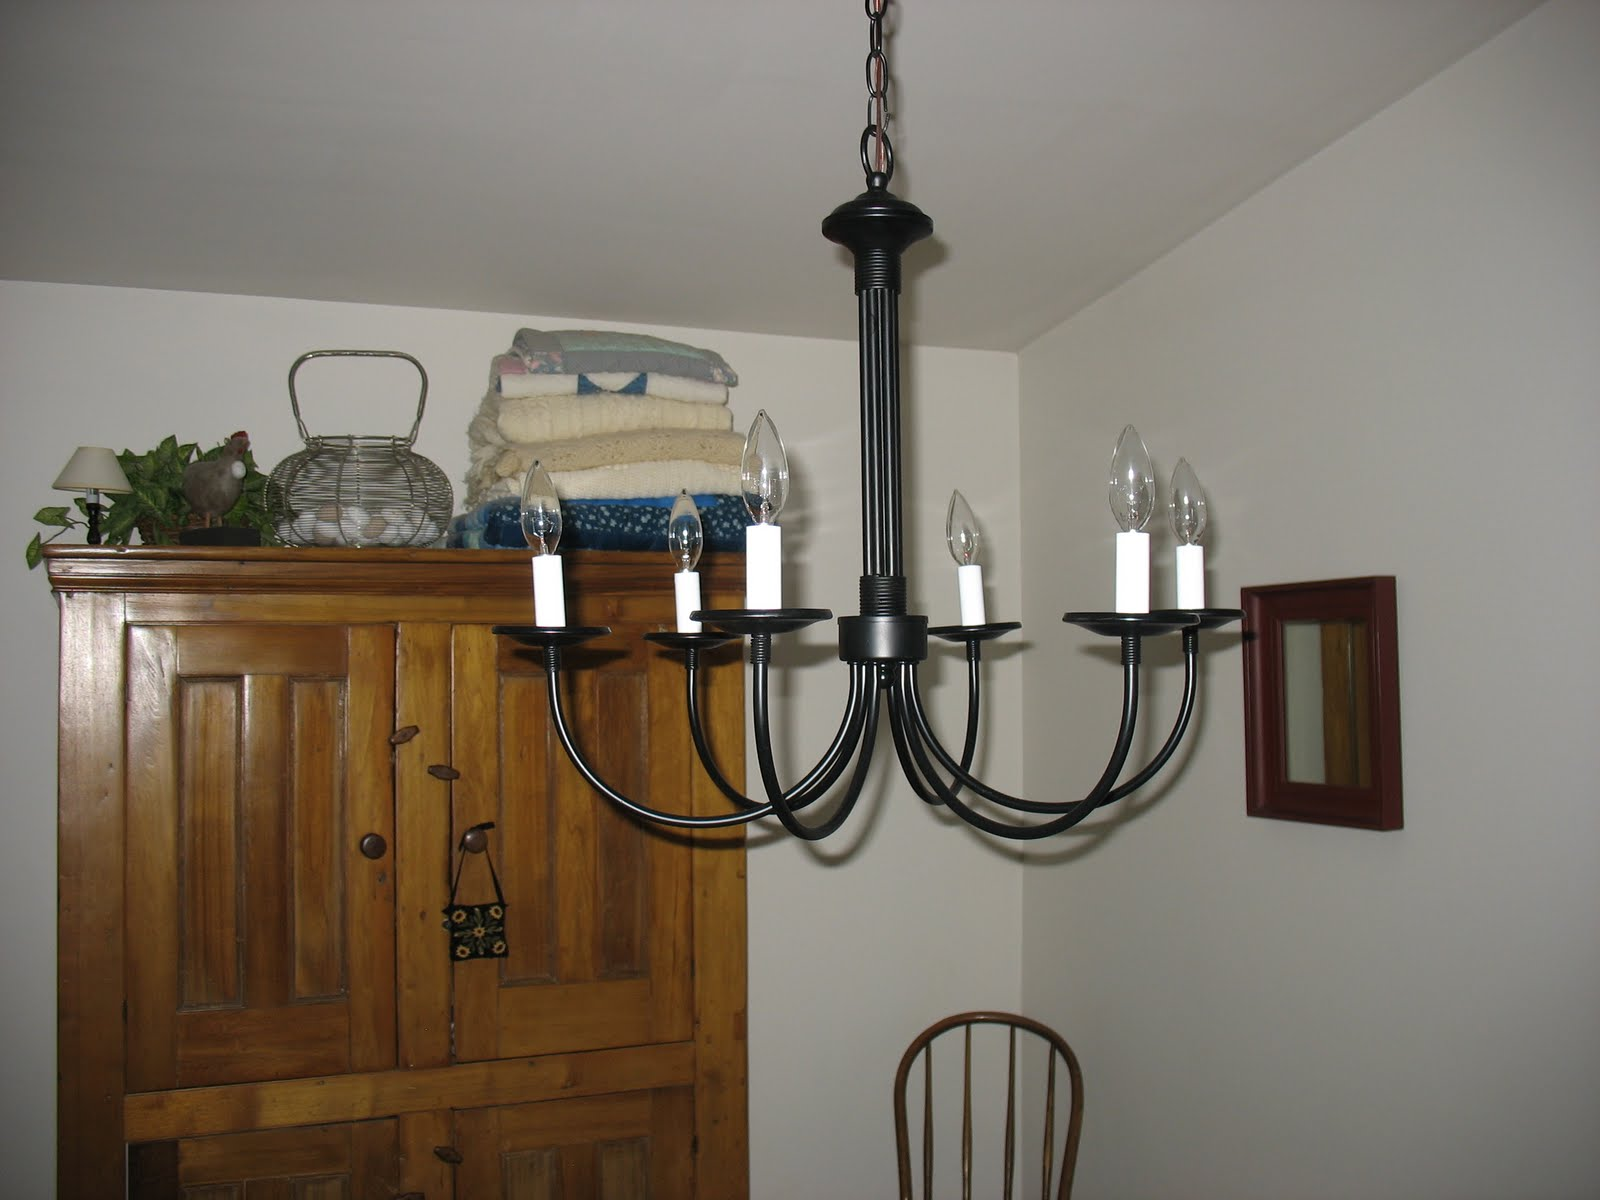 appleberrycottage PRiMiTiVe CHaNDeLieR MaKe OVeR